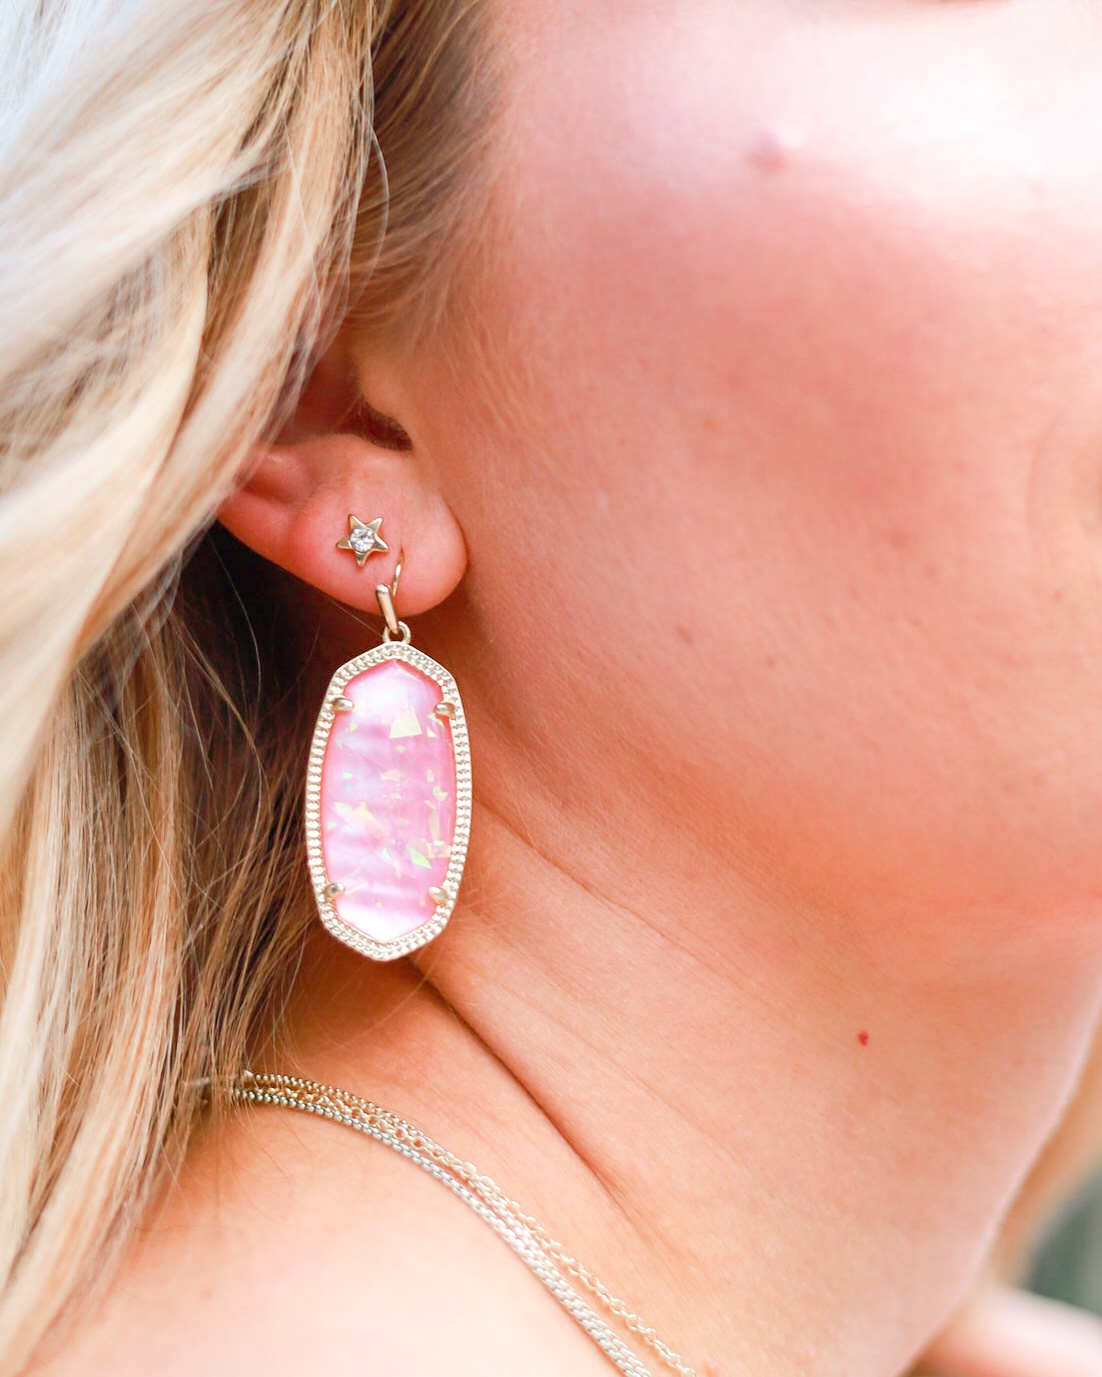 HOW TO LAYER JEWELRY EARRINGS